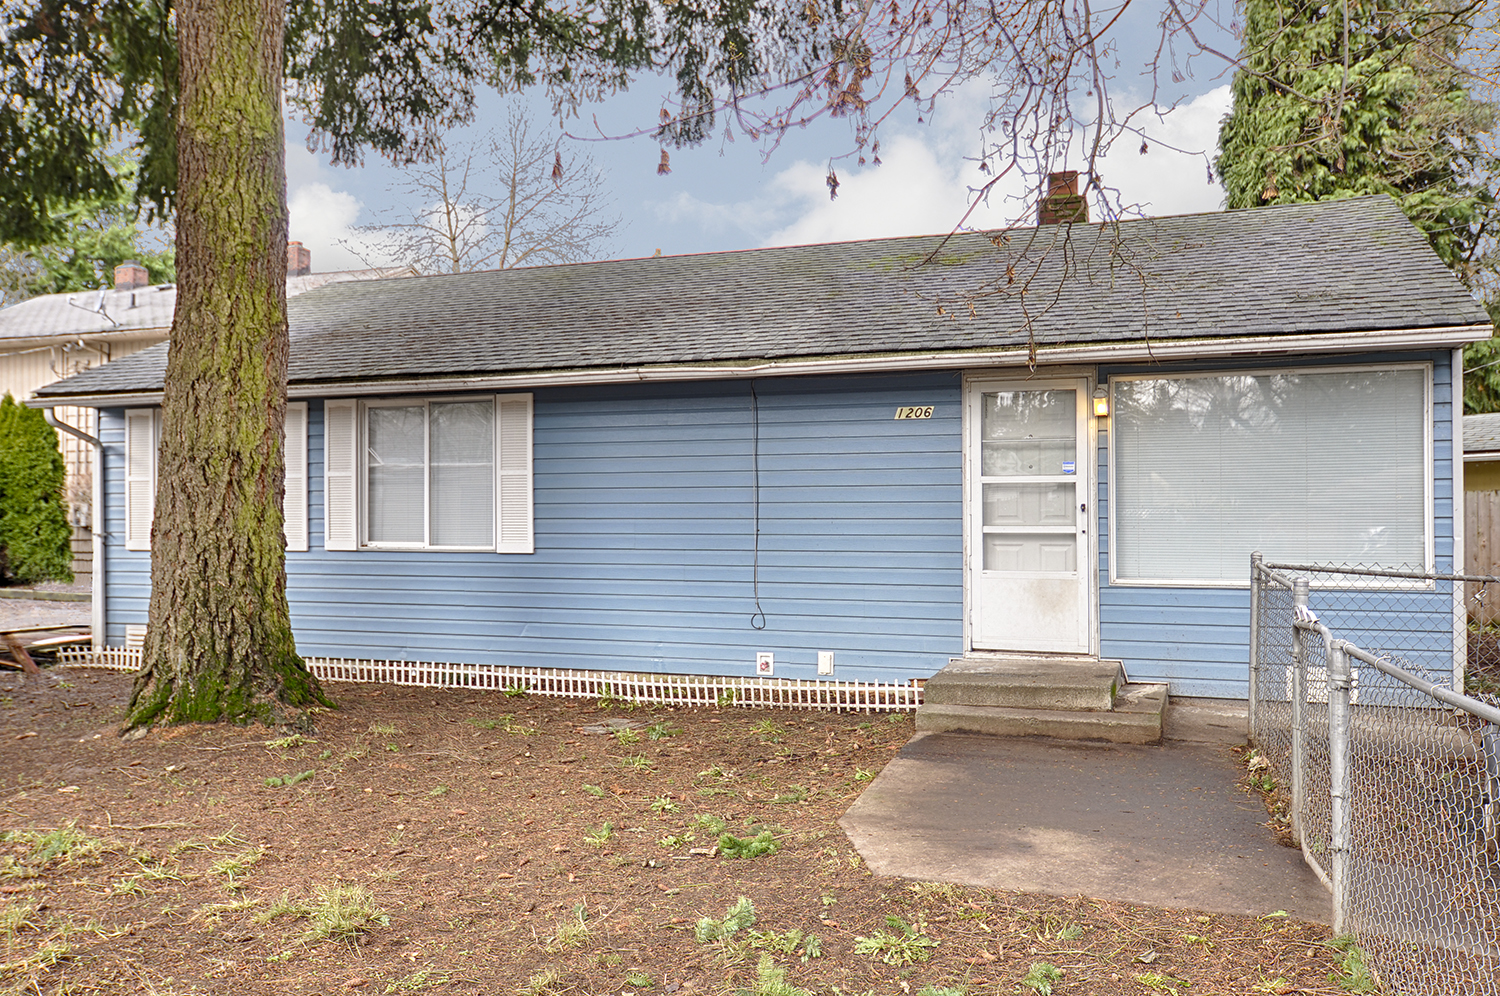 realtybyjenna vancouver wa real estate home for sale 3